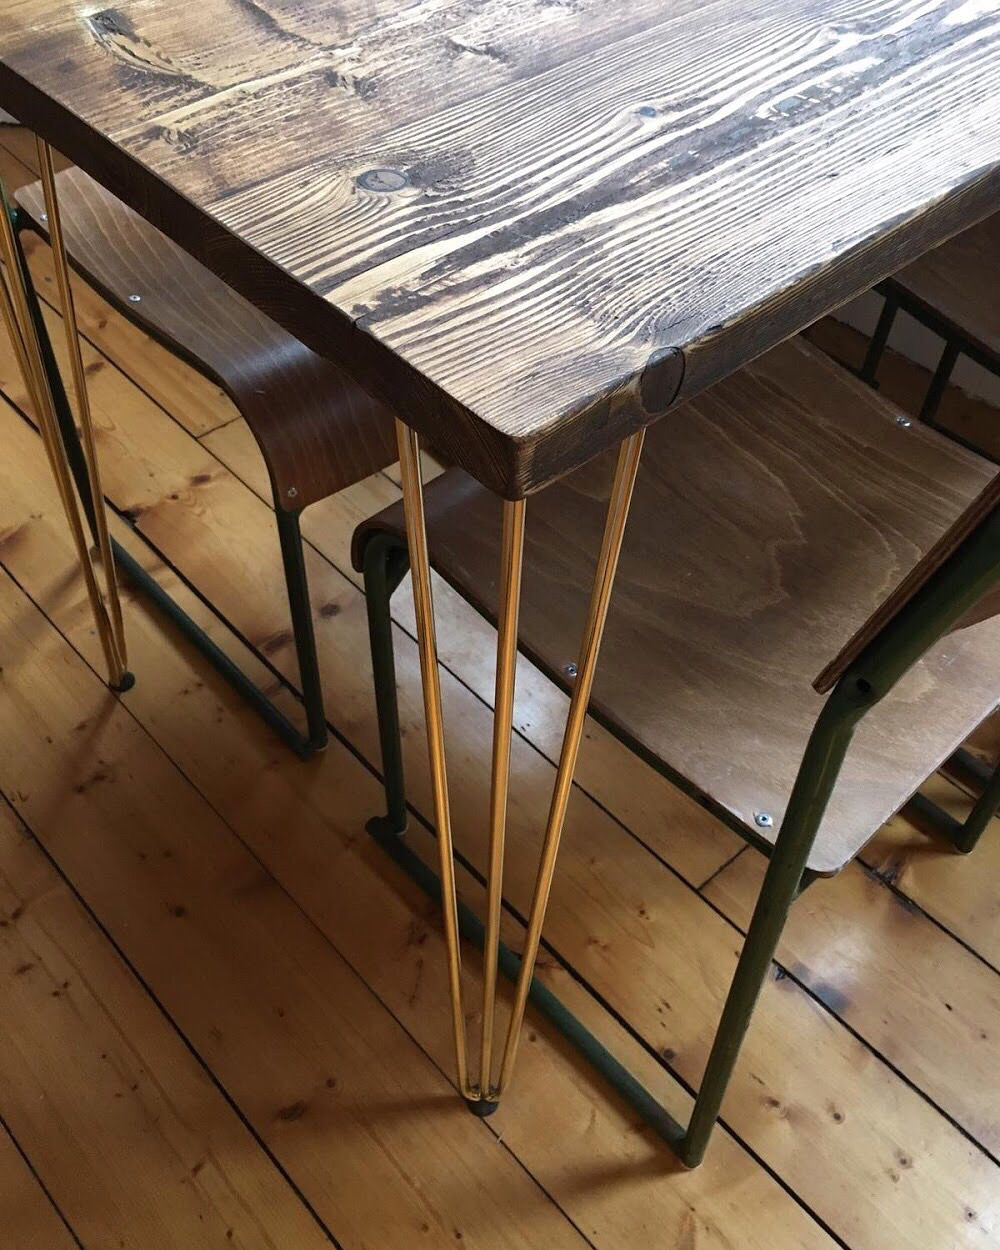 Reclaimed Wood Dining Table With Gold Hairpin Legs Reclaimed Wood Dining Table Wood Dining Table Reclaimed Wood Furniture